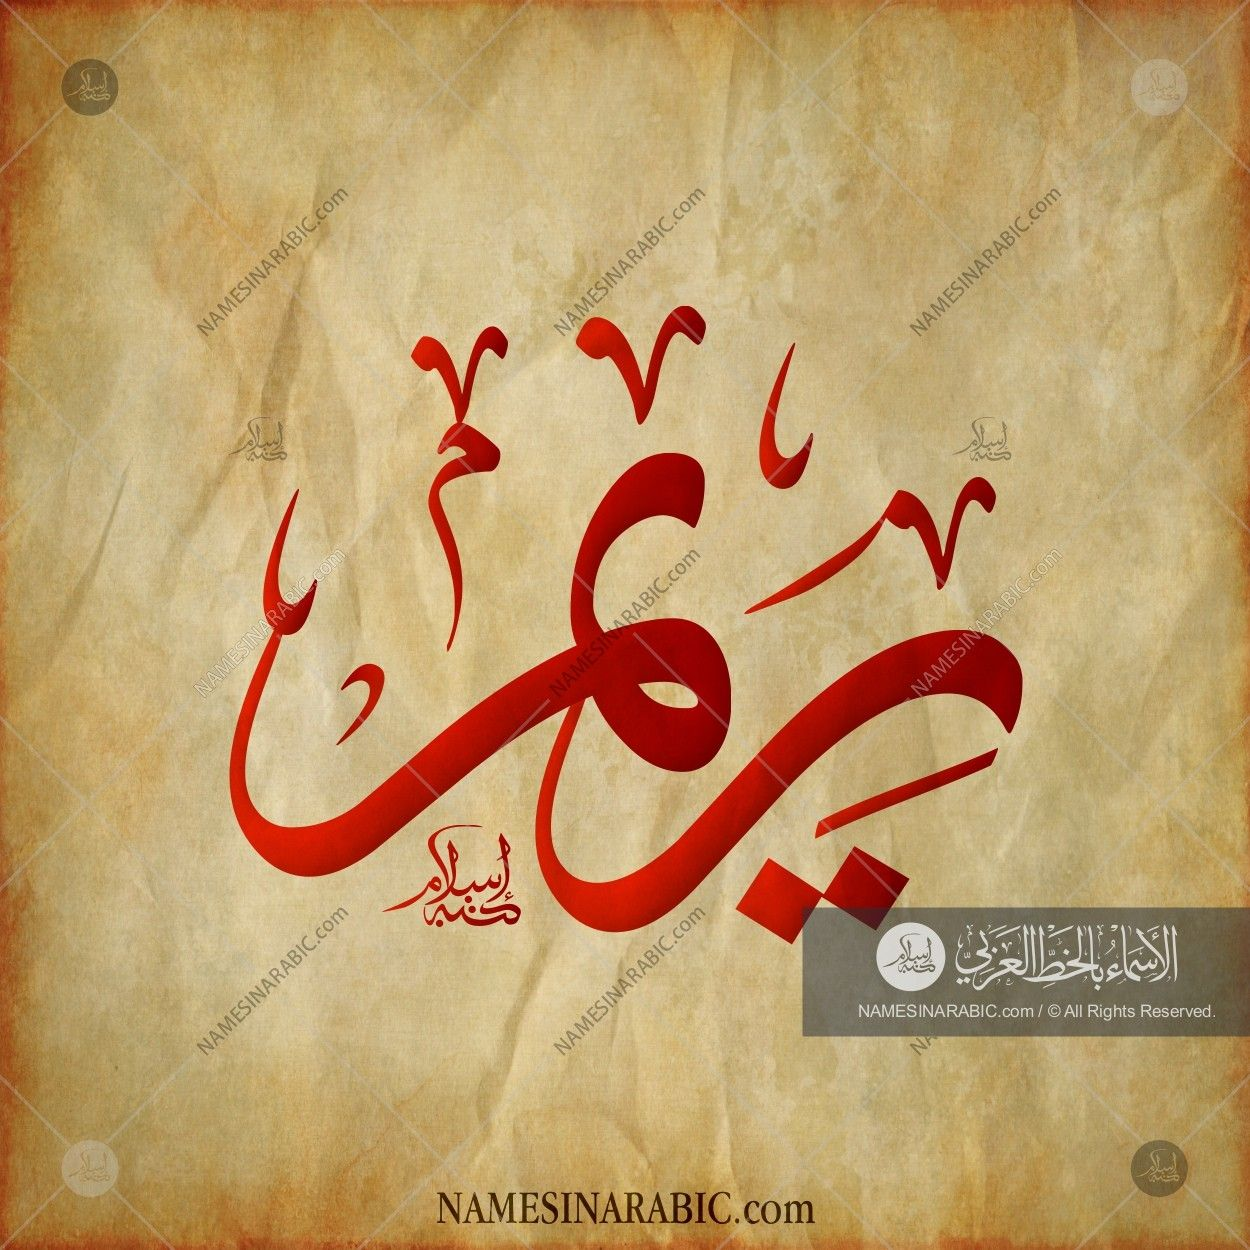 Reem ريم Names In Arabic Calligraphy Name 1873 Islamic Art Calligraphy Calligraphy Name Name Design Art